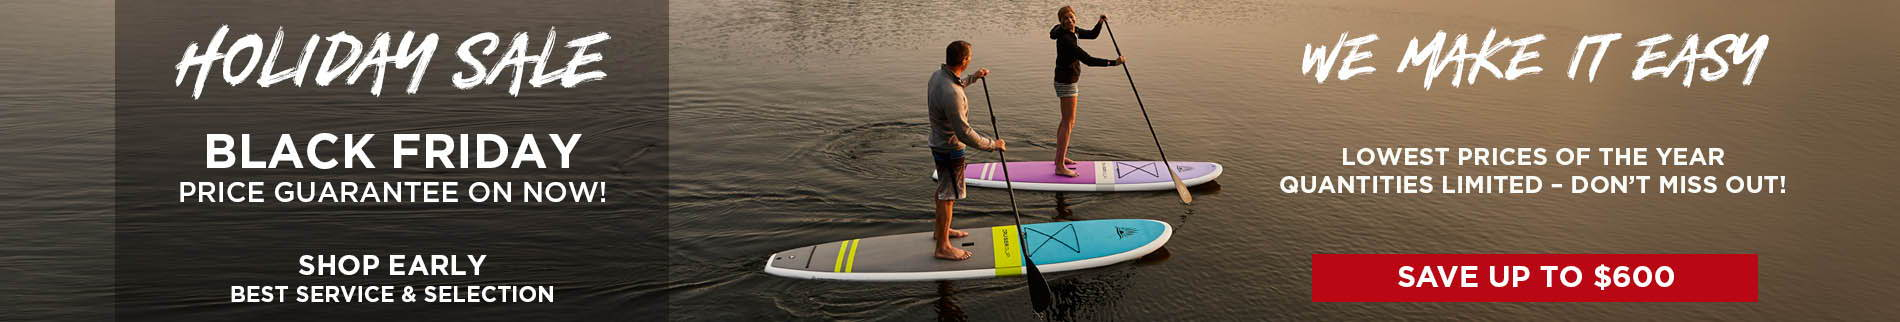 Inflatable Paddle Board | Clearance Sale | Cruiser SUP Fusion and Bliss